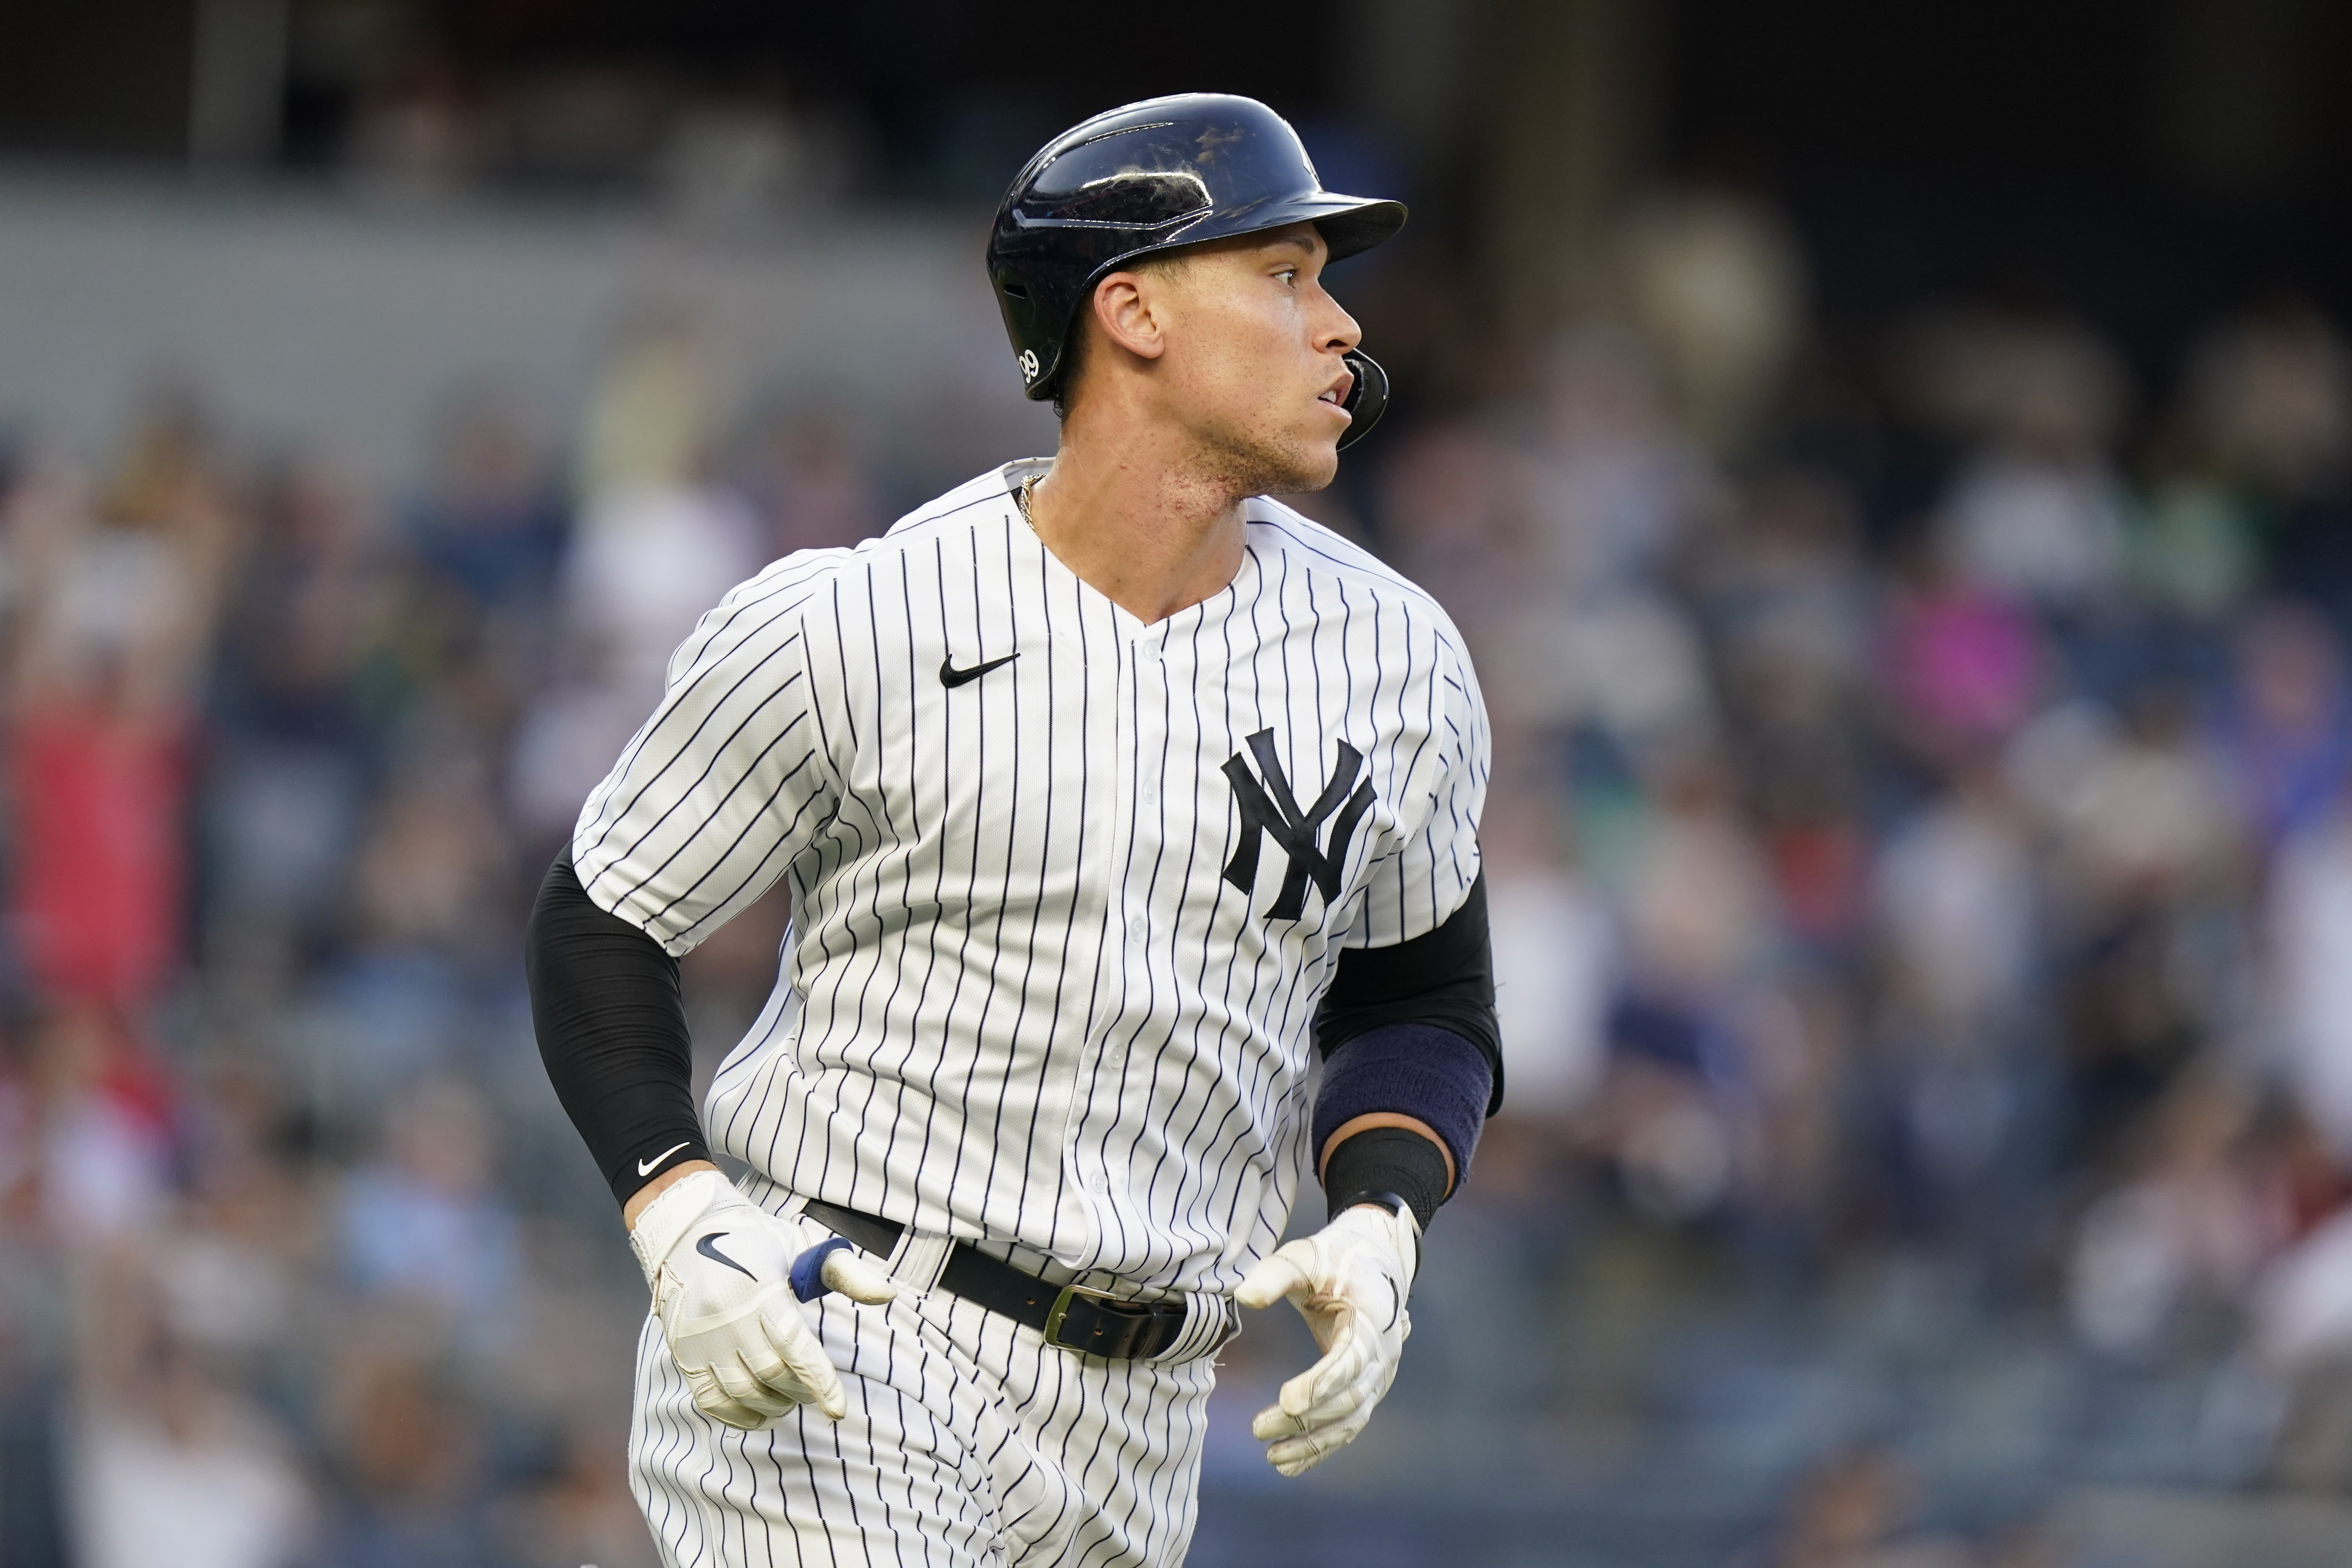 Yankees' Aaron Judge Says He Called Players-Only Meeting to Address Issues Amid Slump